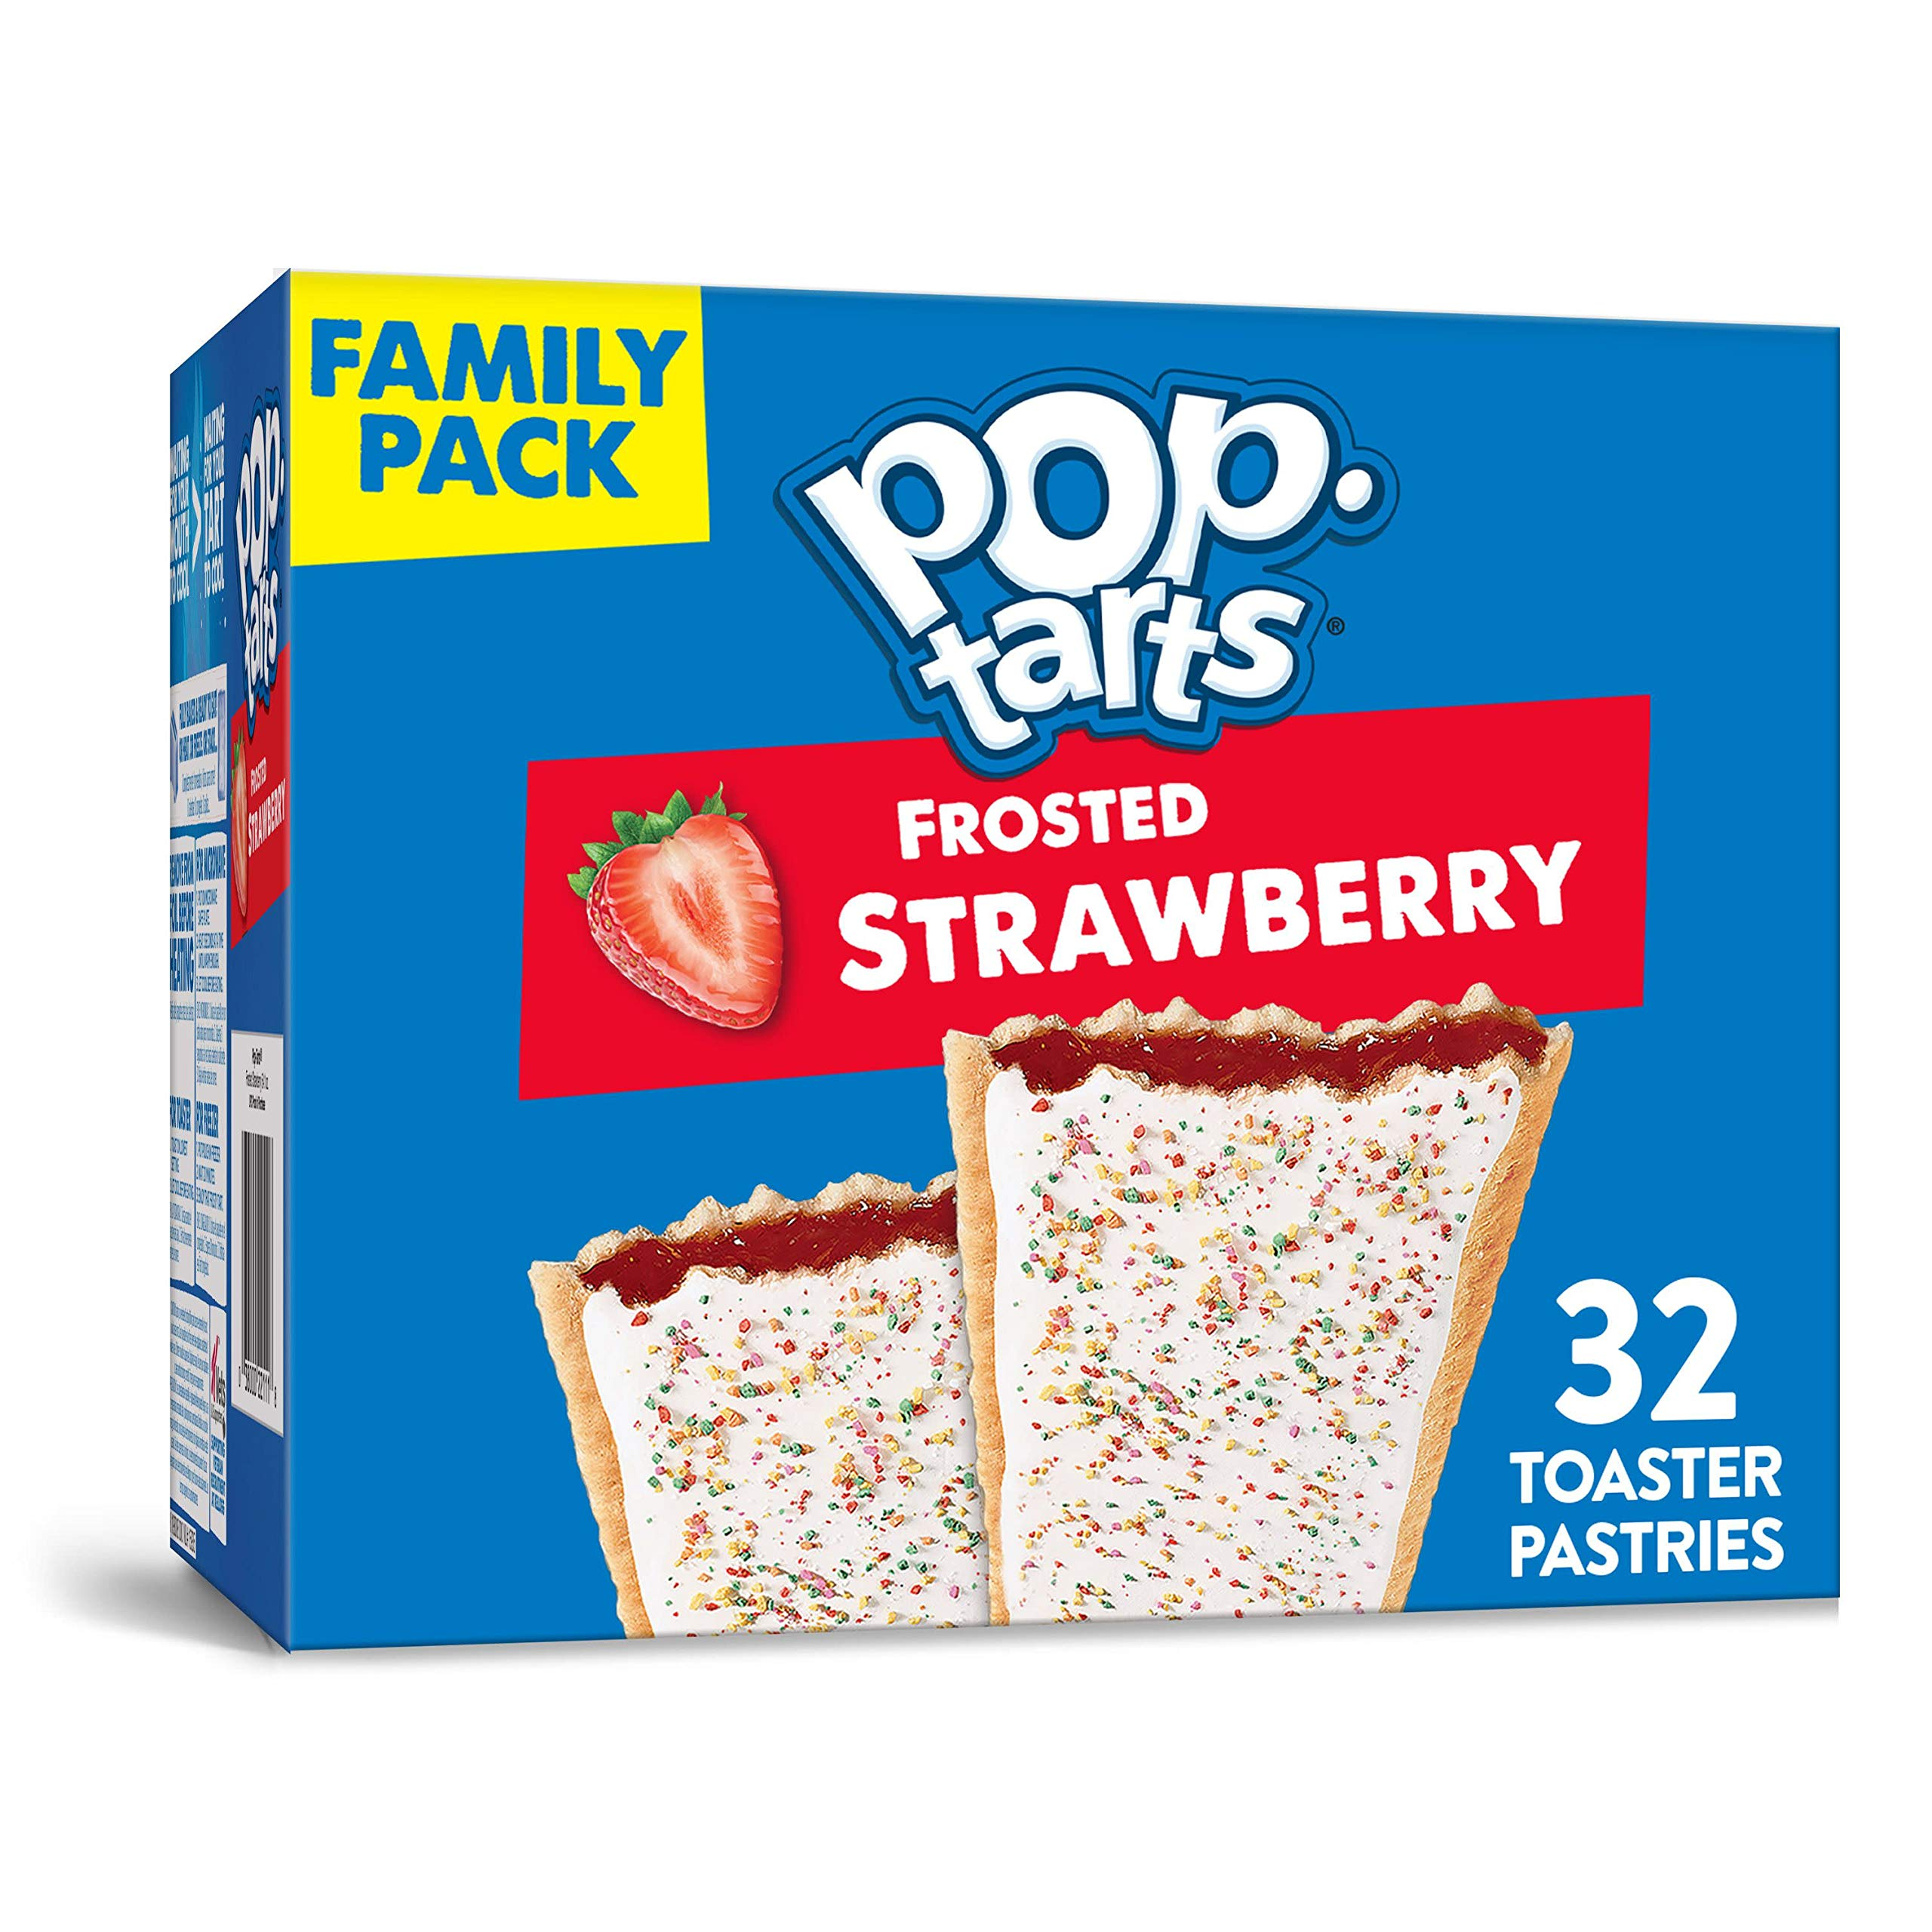 Pop-Tarts, Breakfast Toaster Pastries, Frosted Strawberry, Proudly Baked in the USA, Family Pack, 54.1oz Box (32 Count)